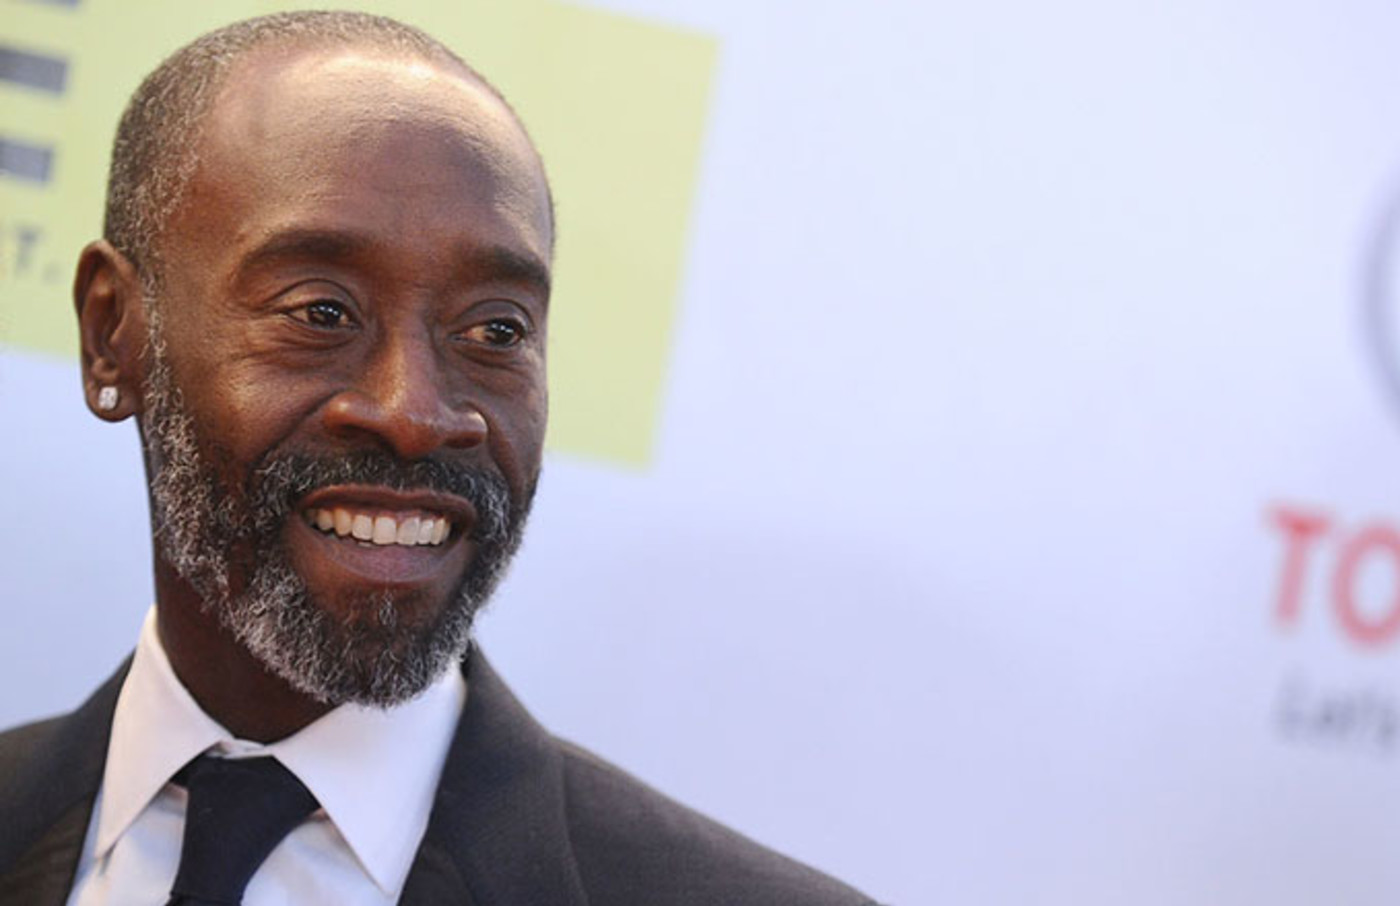 This is a photo of Don Cheadle.